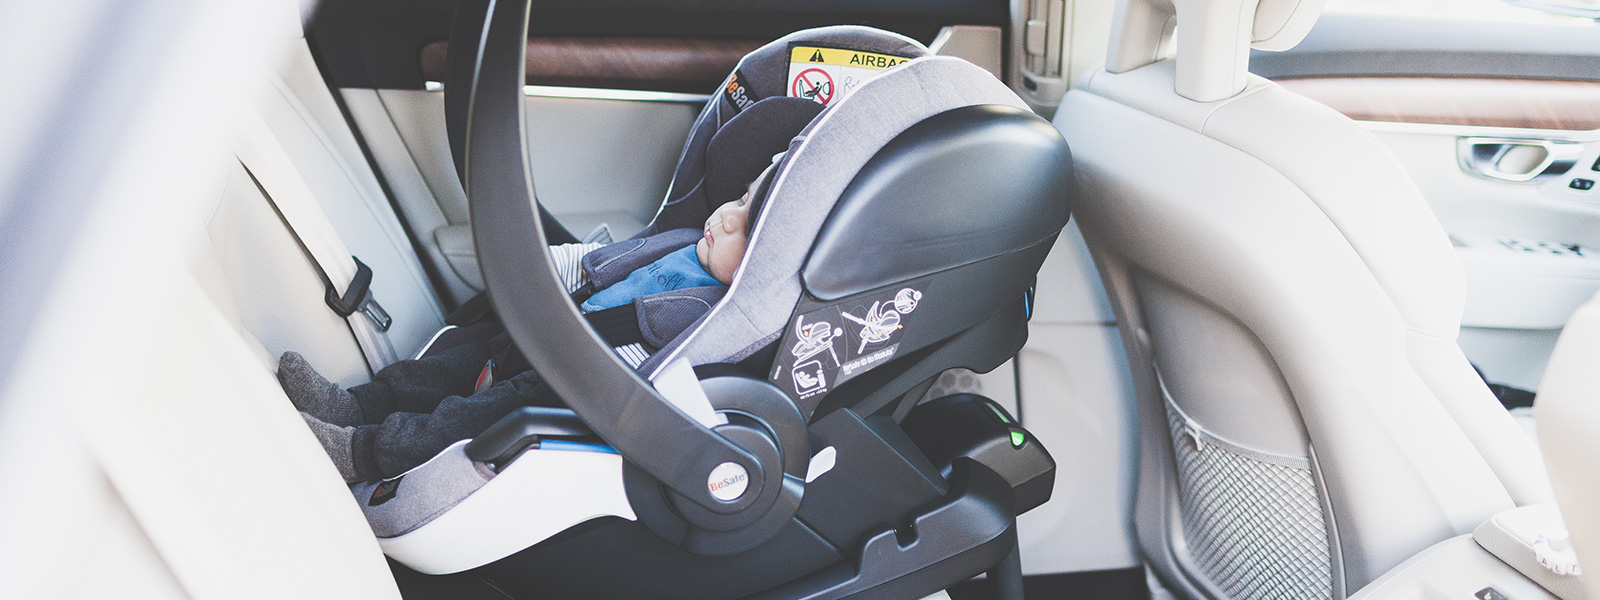 Newborn Car Seat Set Up When To Change Car Seats For Children A Full Overview